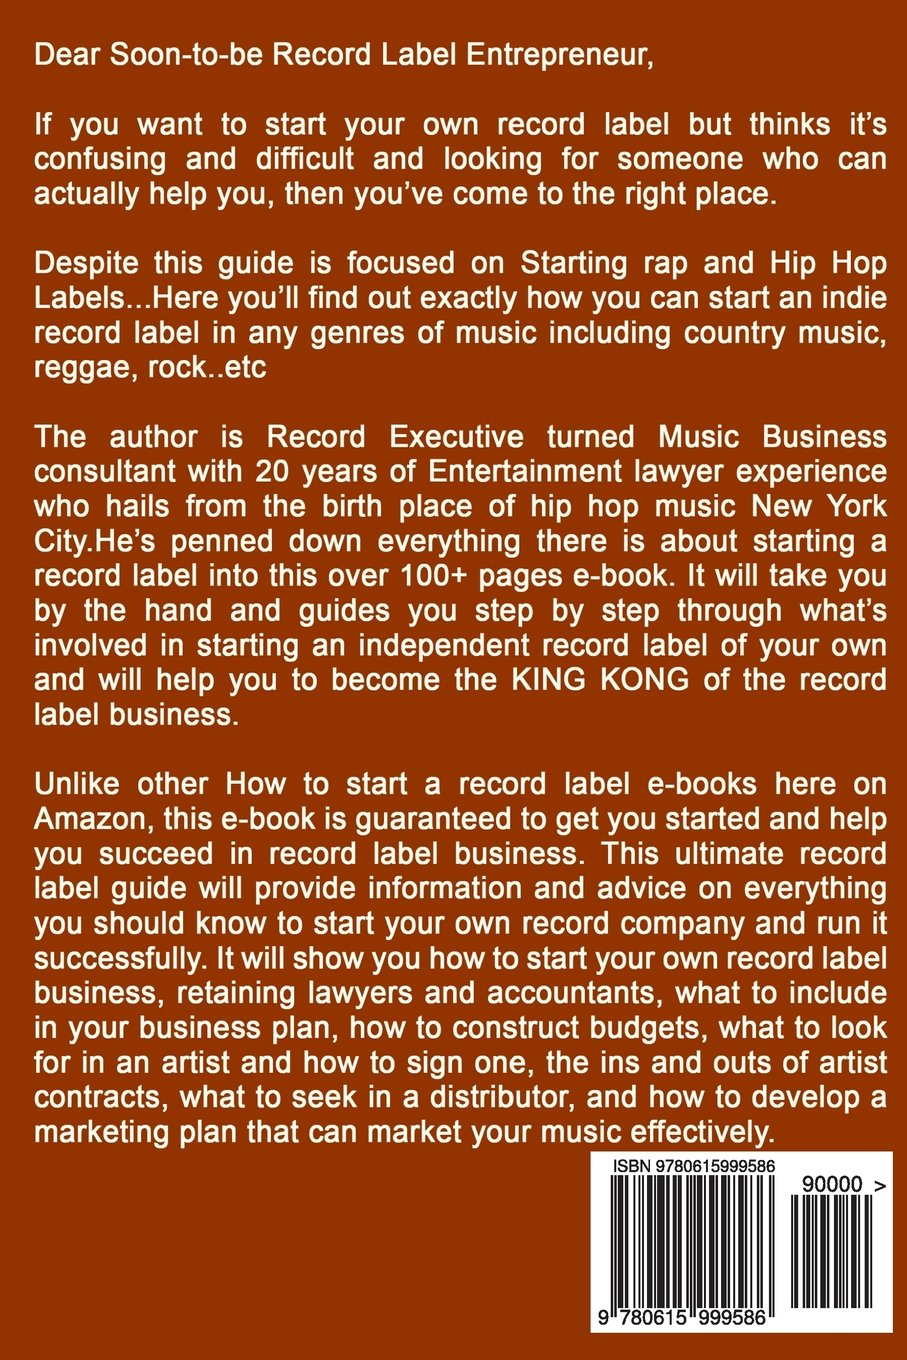 Amazon how to start a rap record label a must read guide to amazon how to start a rap record label a must read guide to starting a hip hop and rap record label 9780615999586 gio williams books fandeluxe Choice Image